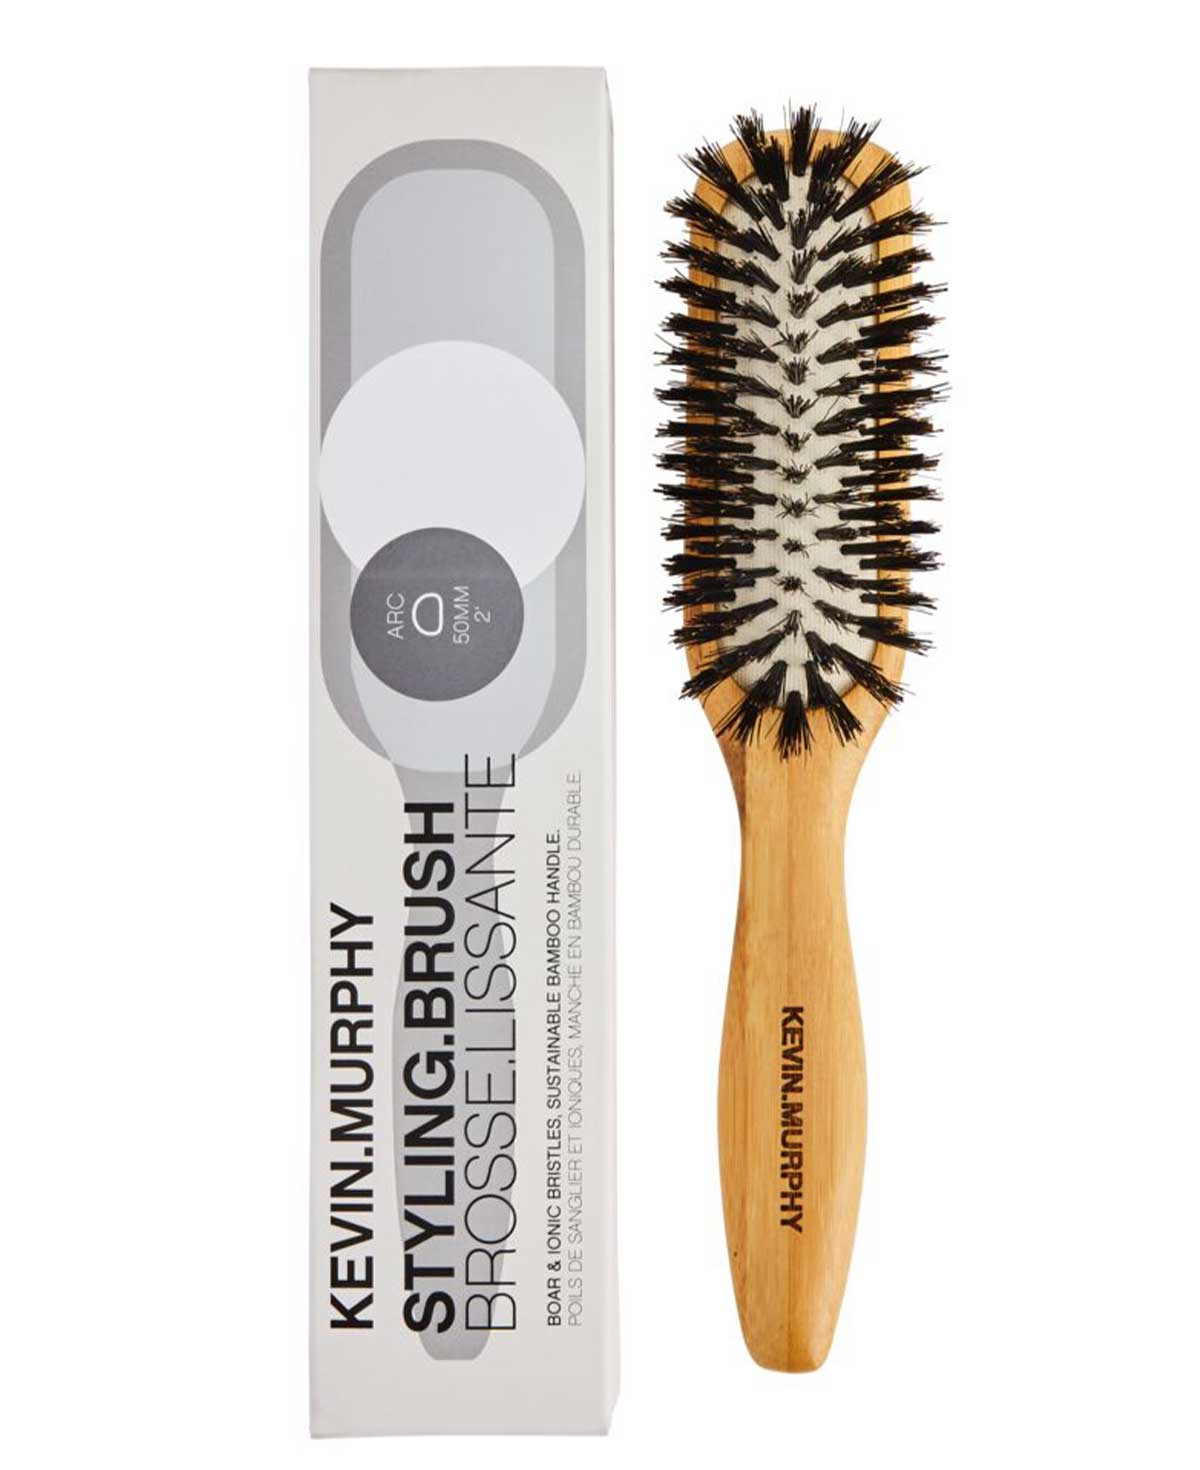 Kevin.Murphy STYLING BRUSH WITH BOX